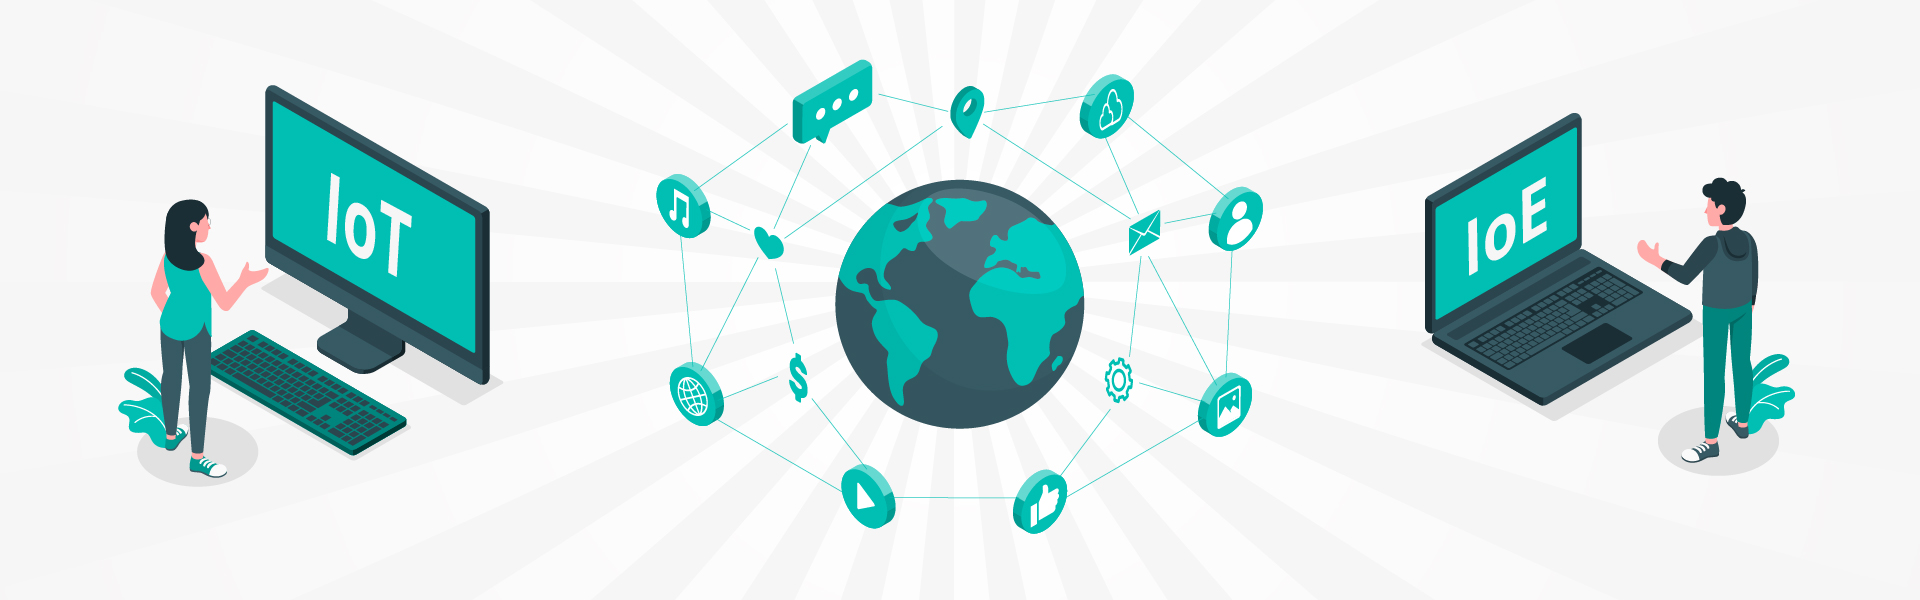 The Internet of Everything and the Internet of Things: What's What?